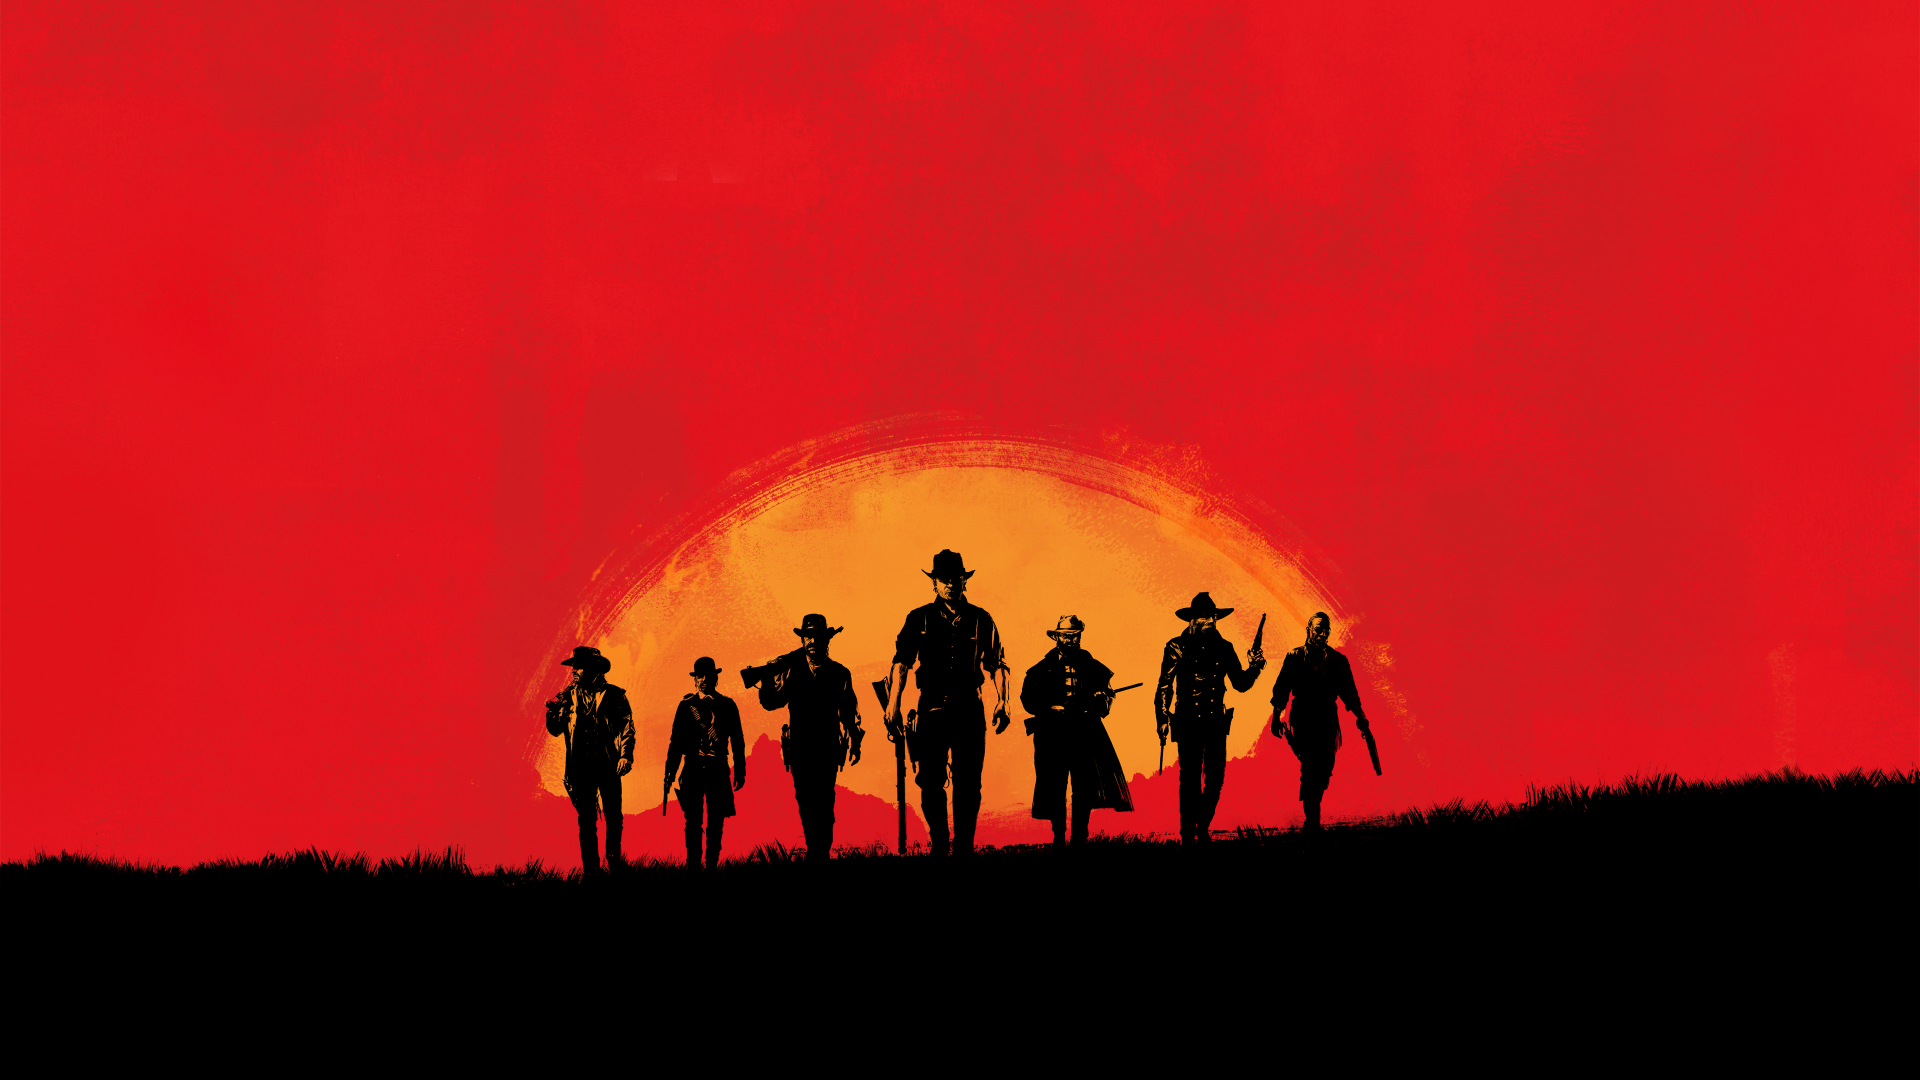 208 Red Dead Redemption 2 HD Wallpapers Background Images 1920x1080